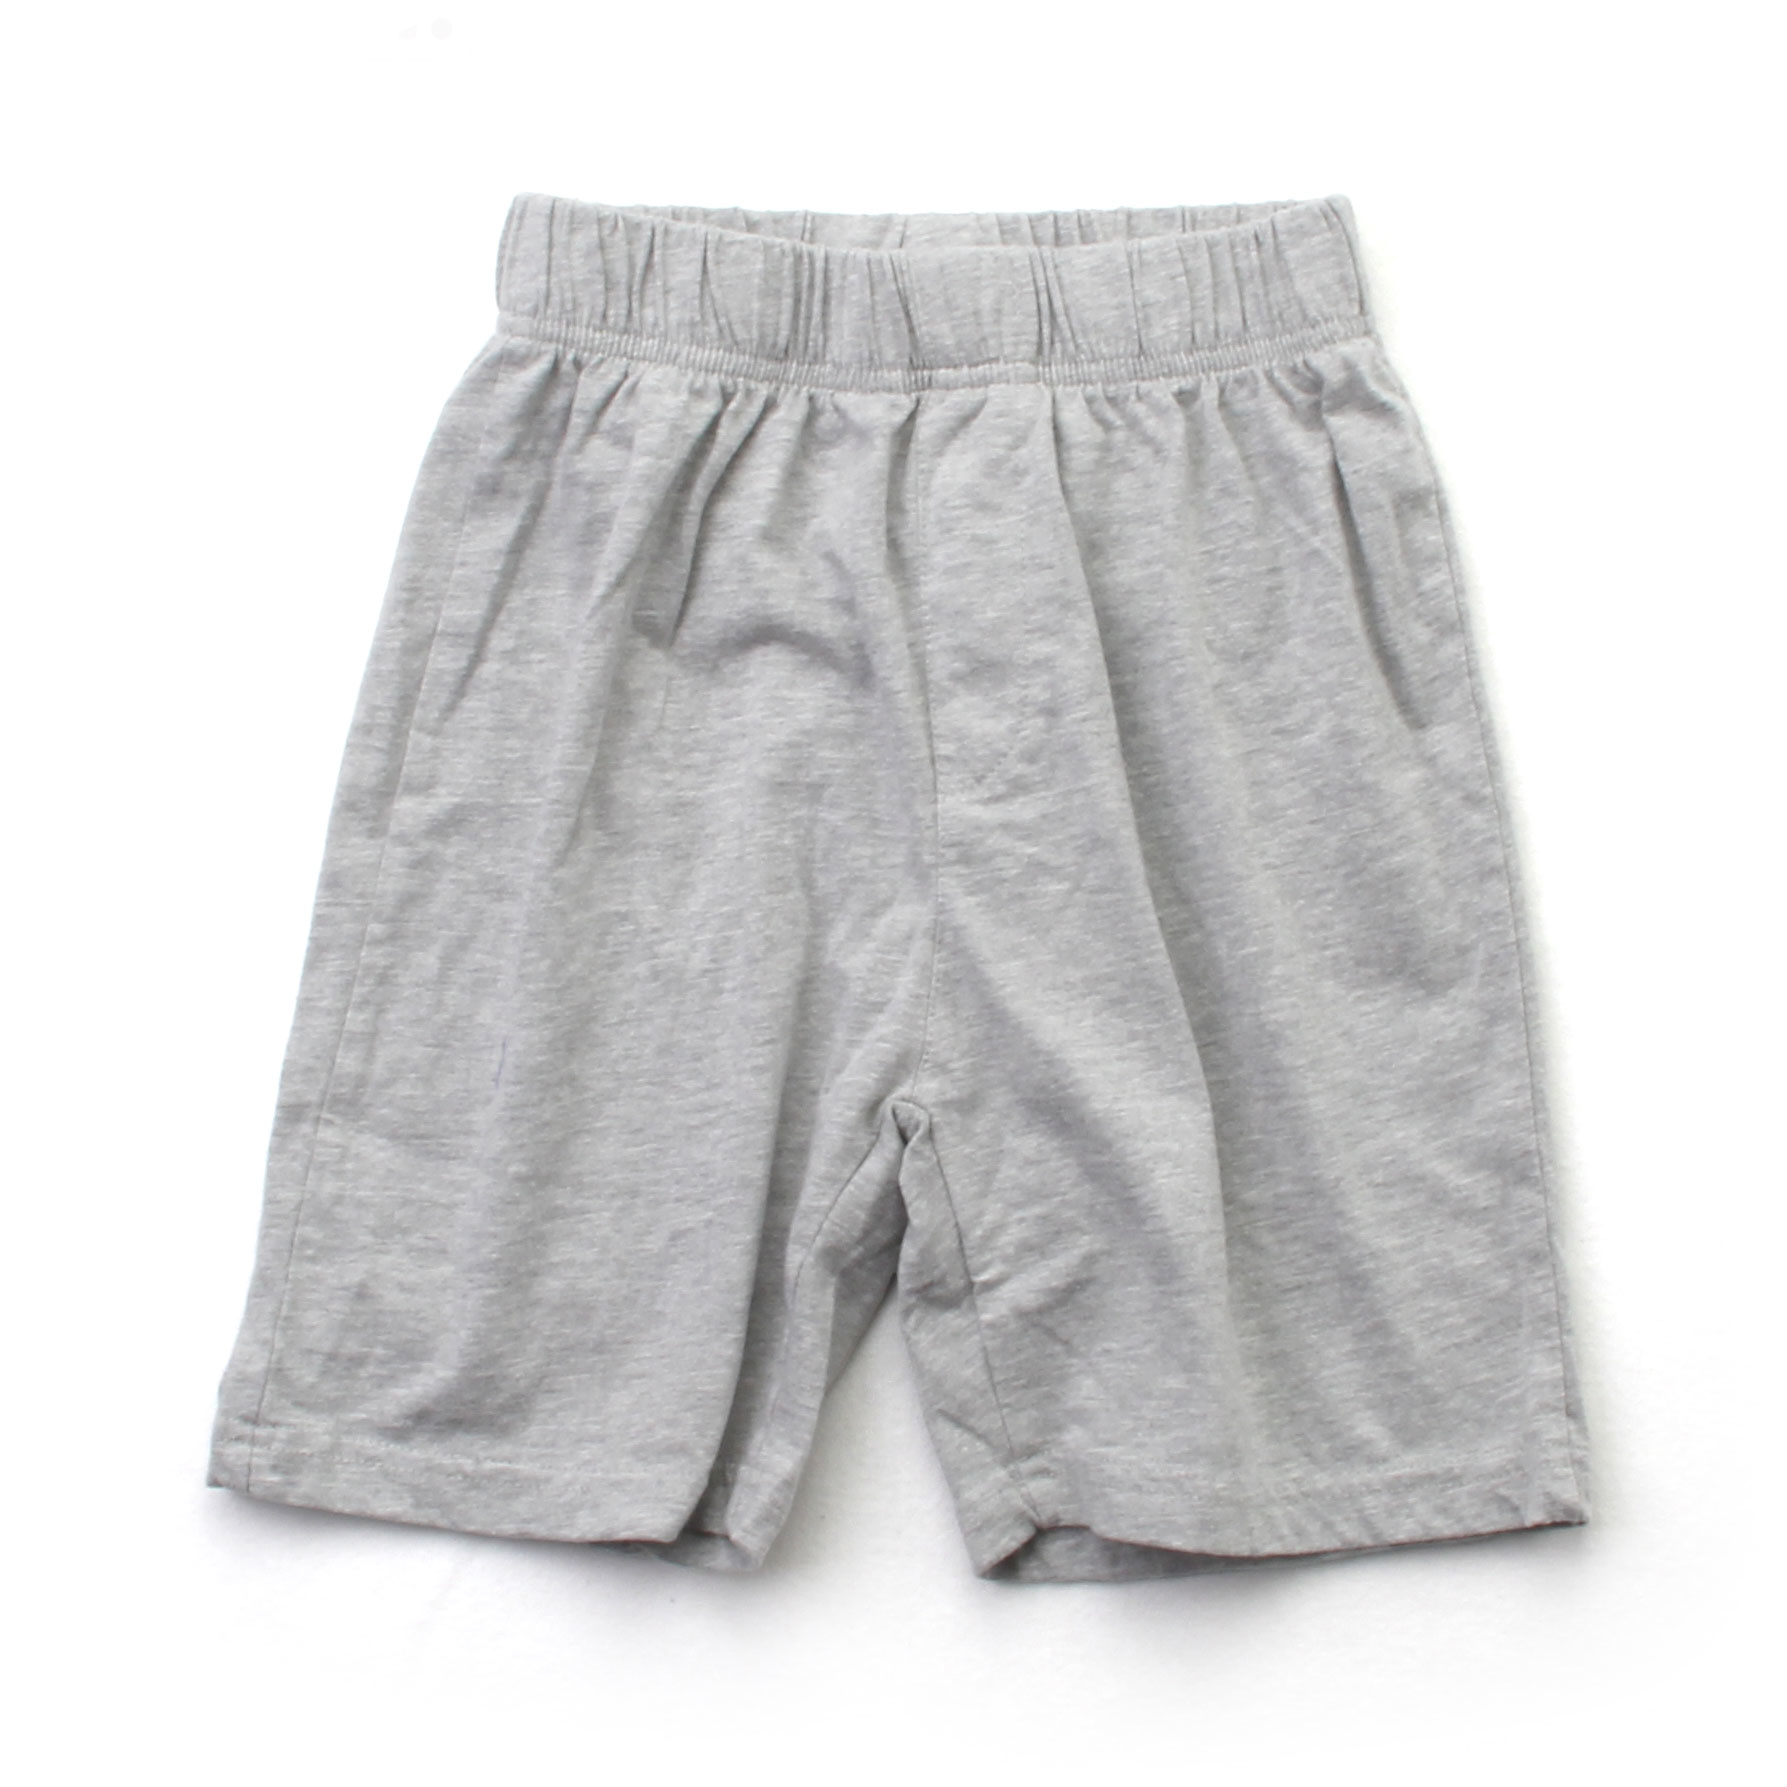 Wes And Willy Blend Jersey Short, Heather